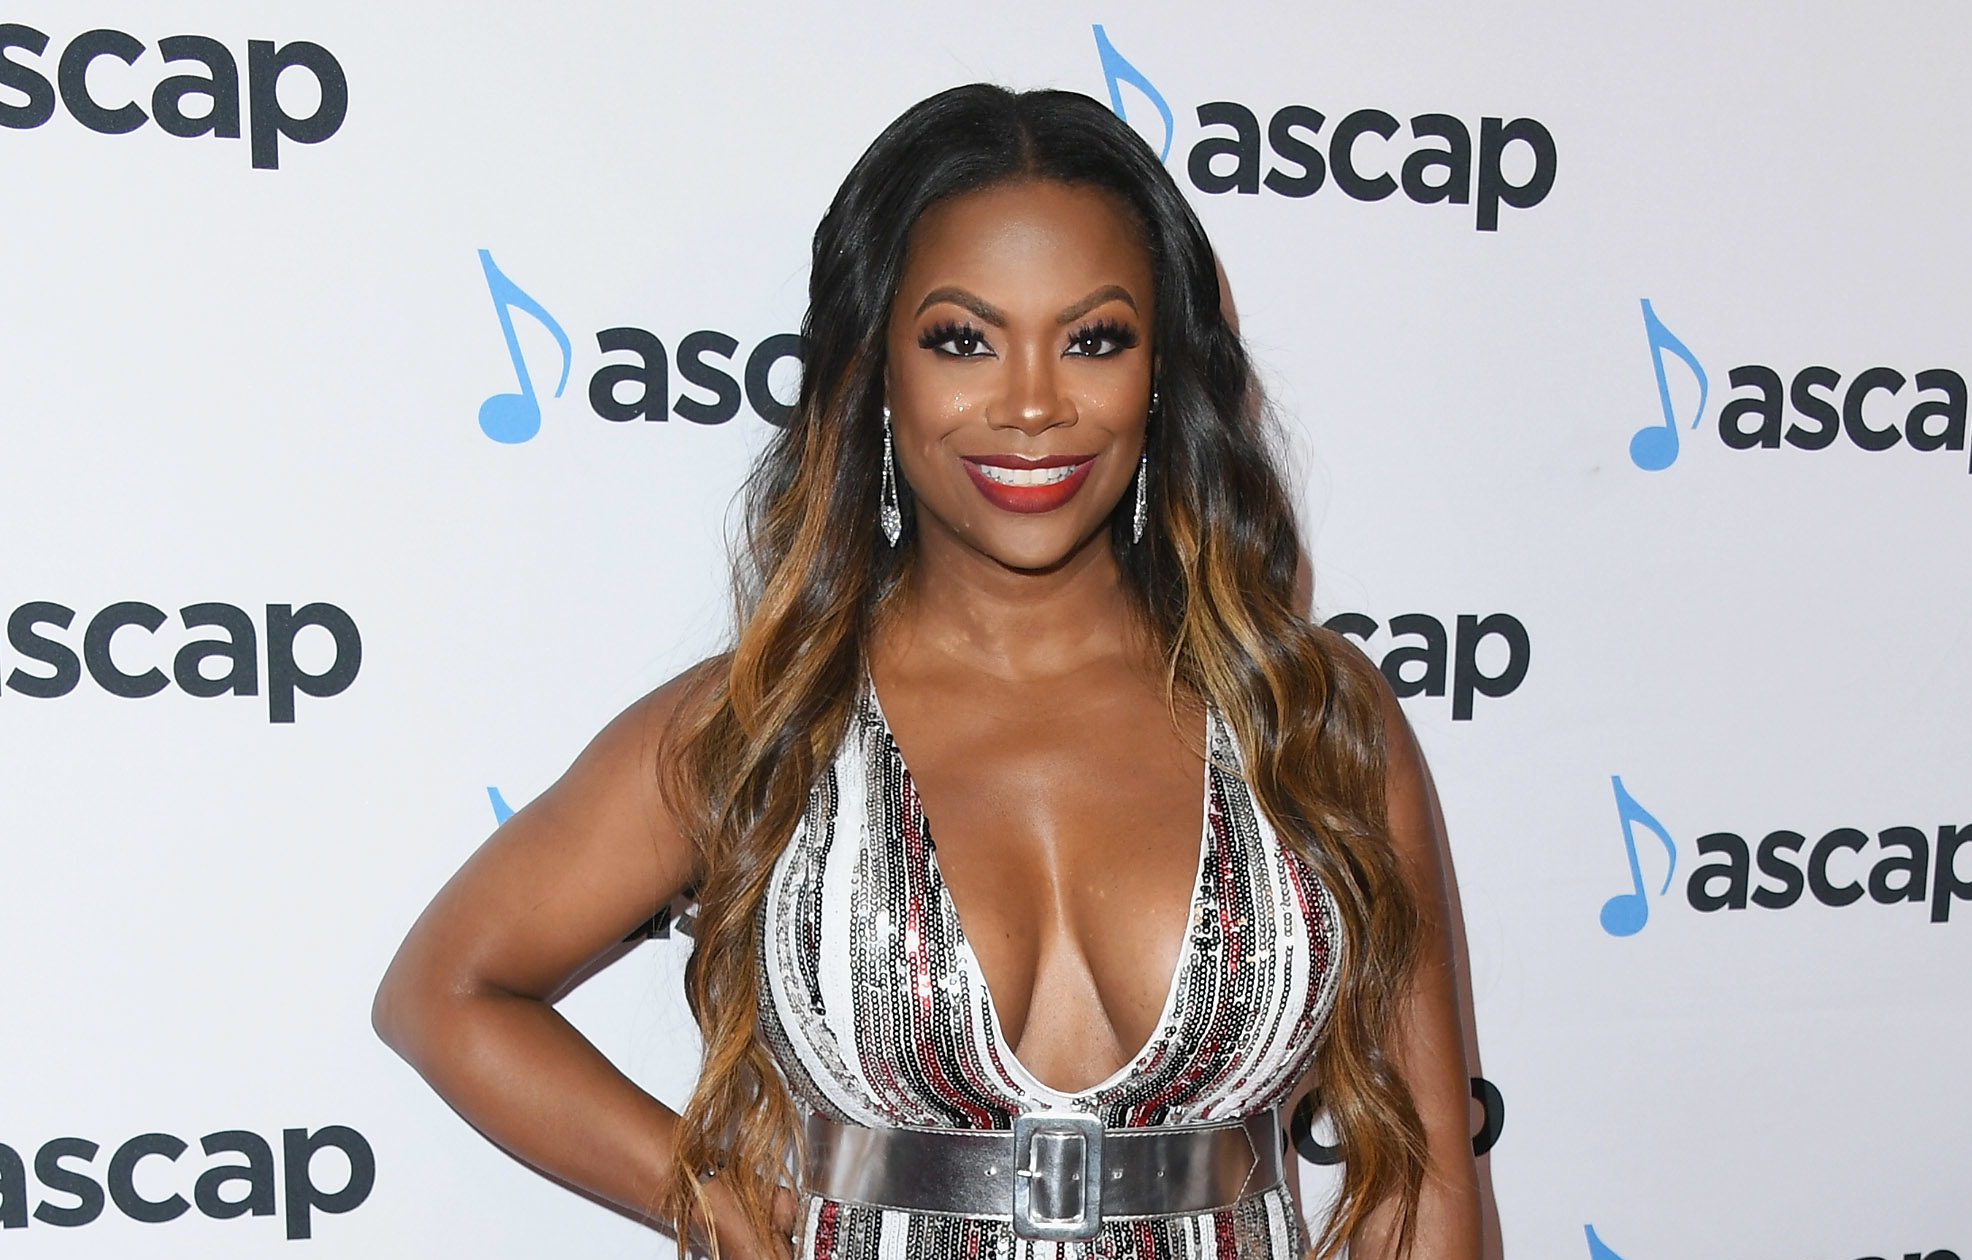 Kandi Burruss Is Excited That Her Movie Envy Will Premiere On Lifetime TV